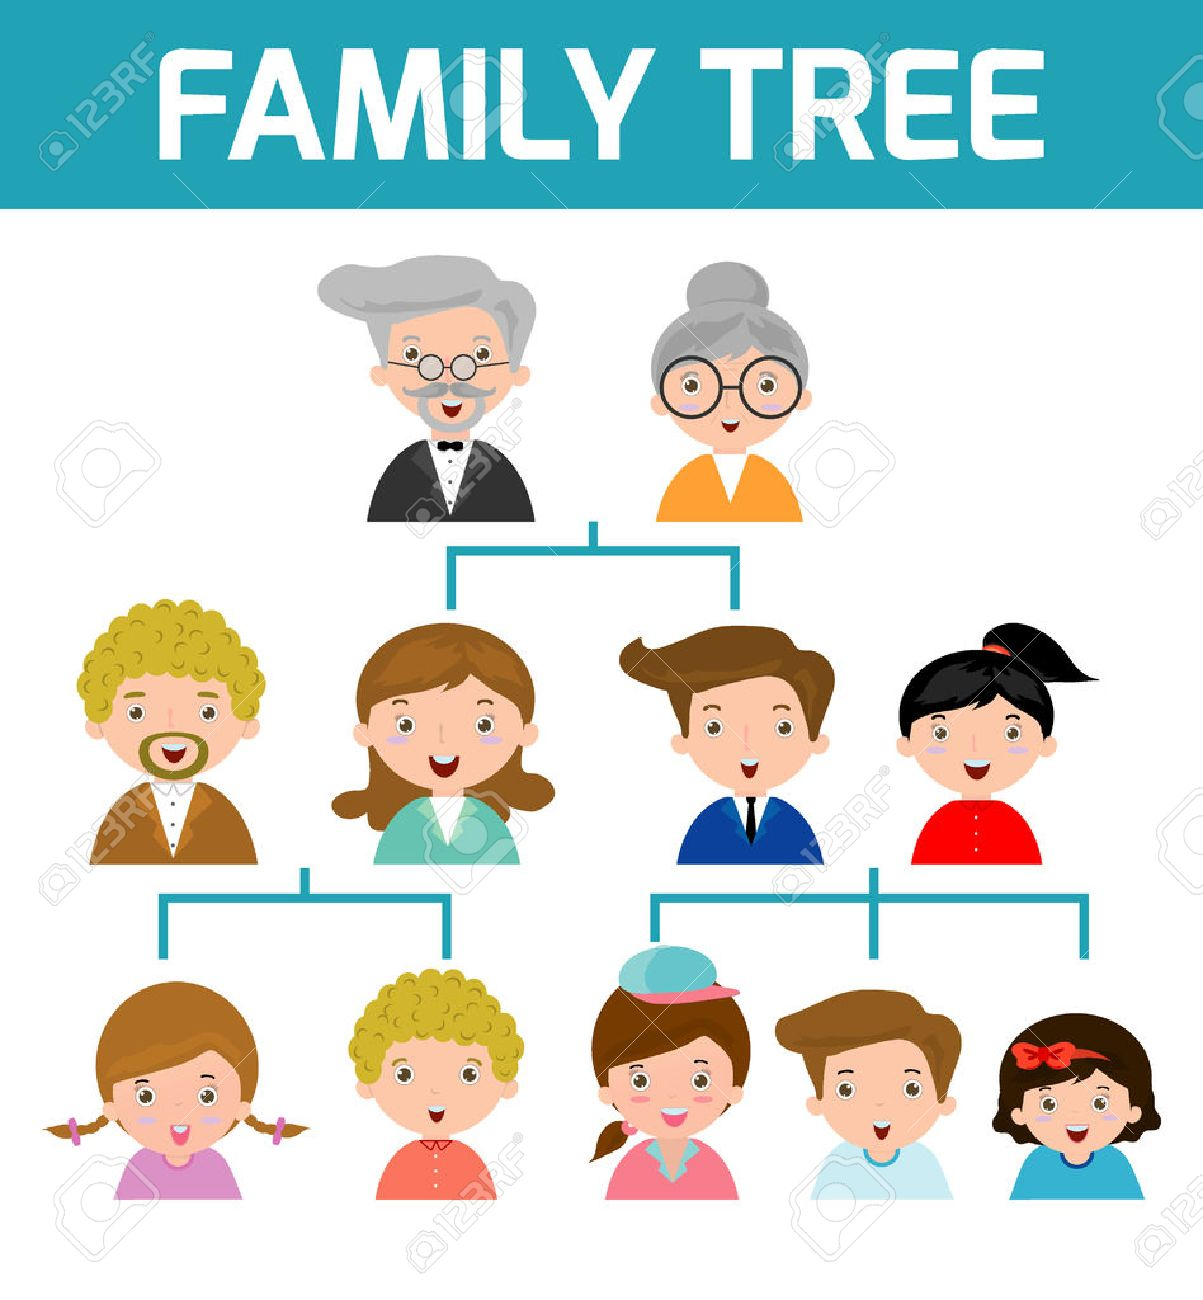 Family Tree, diagram of members on a genealogical tree, isolated on white background, Cartoon vector illustration of family tree, big famoly vector Illustration - 55744552